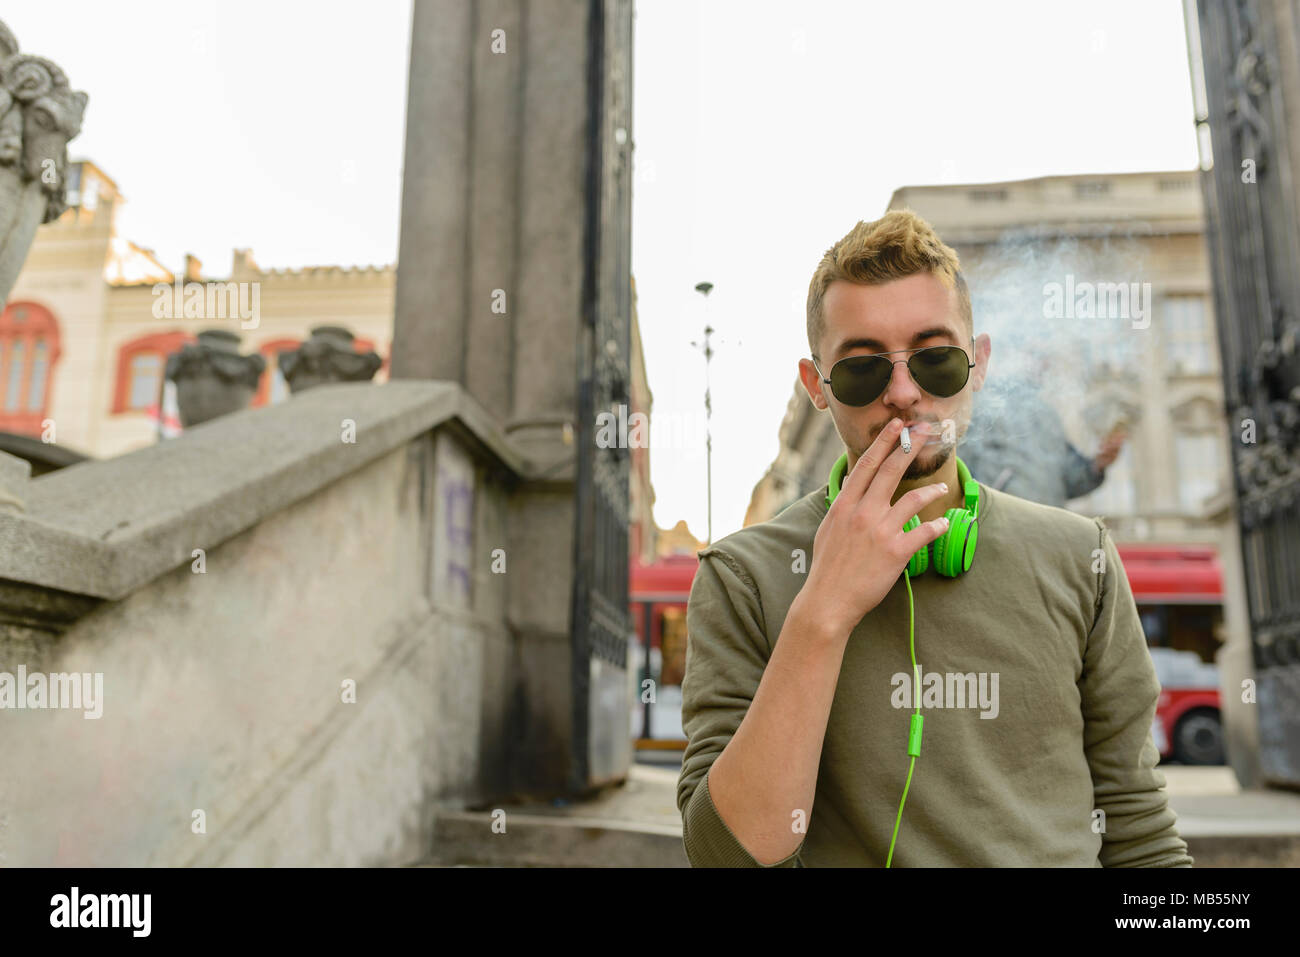 Young handsome man with green headphones and sunglasse enjoying a cigarette in the street. - Stock Image